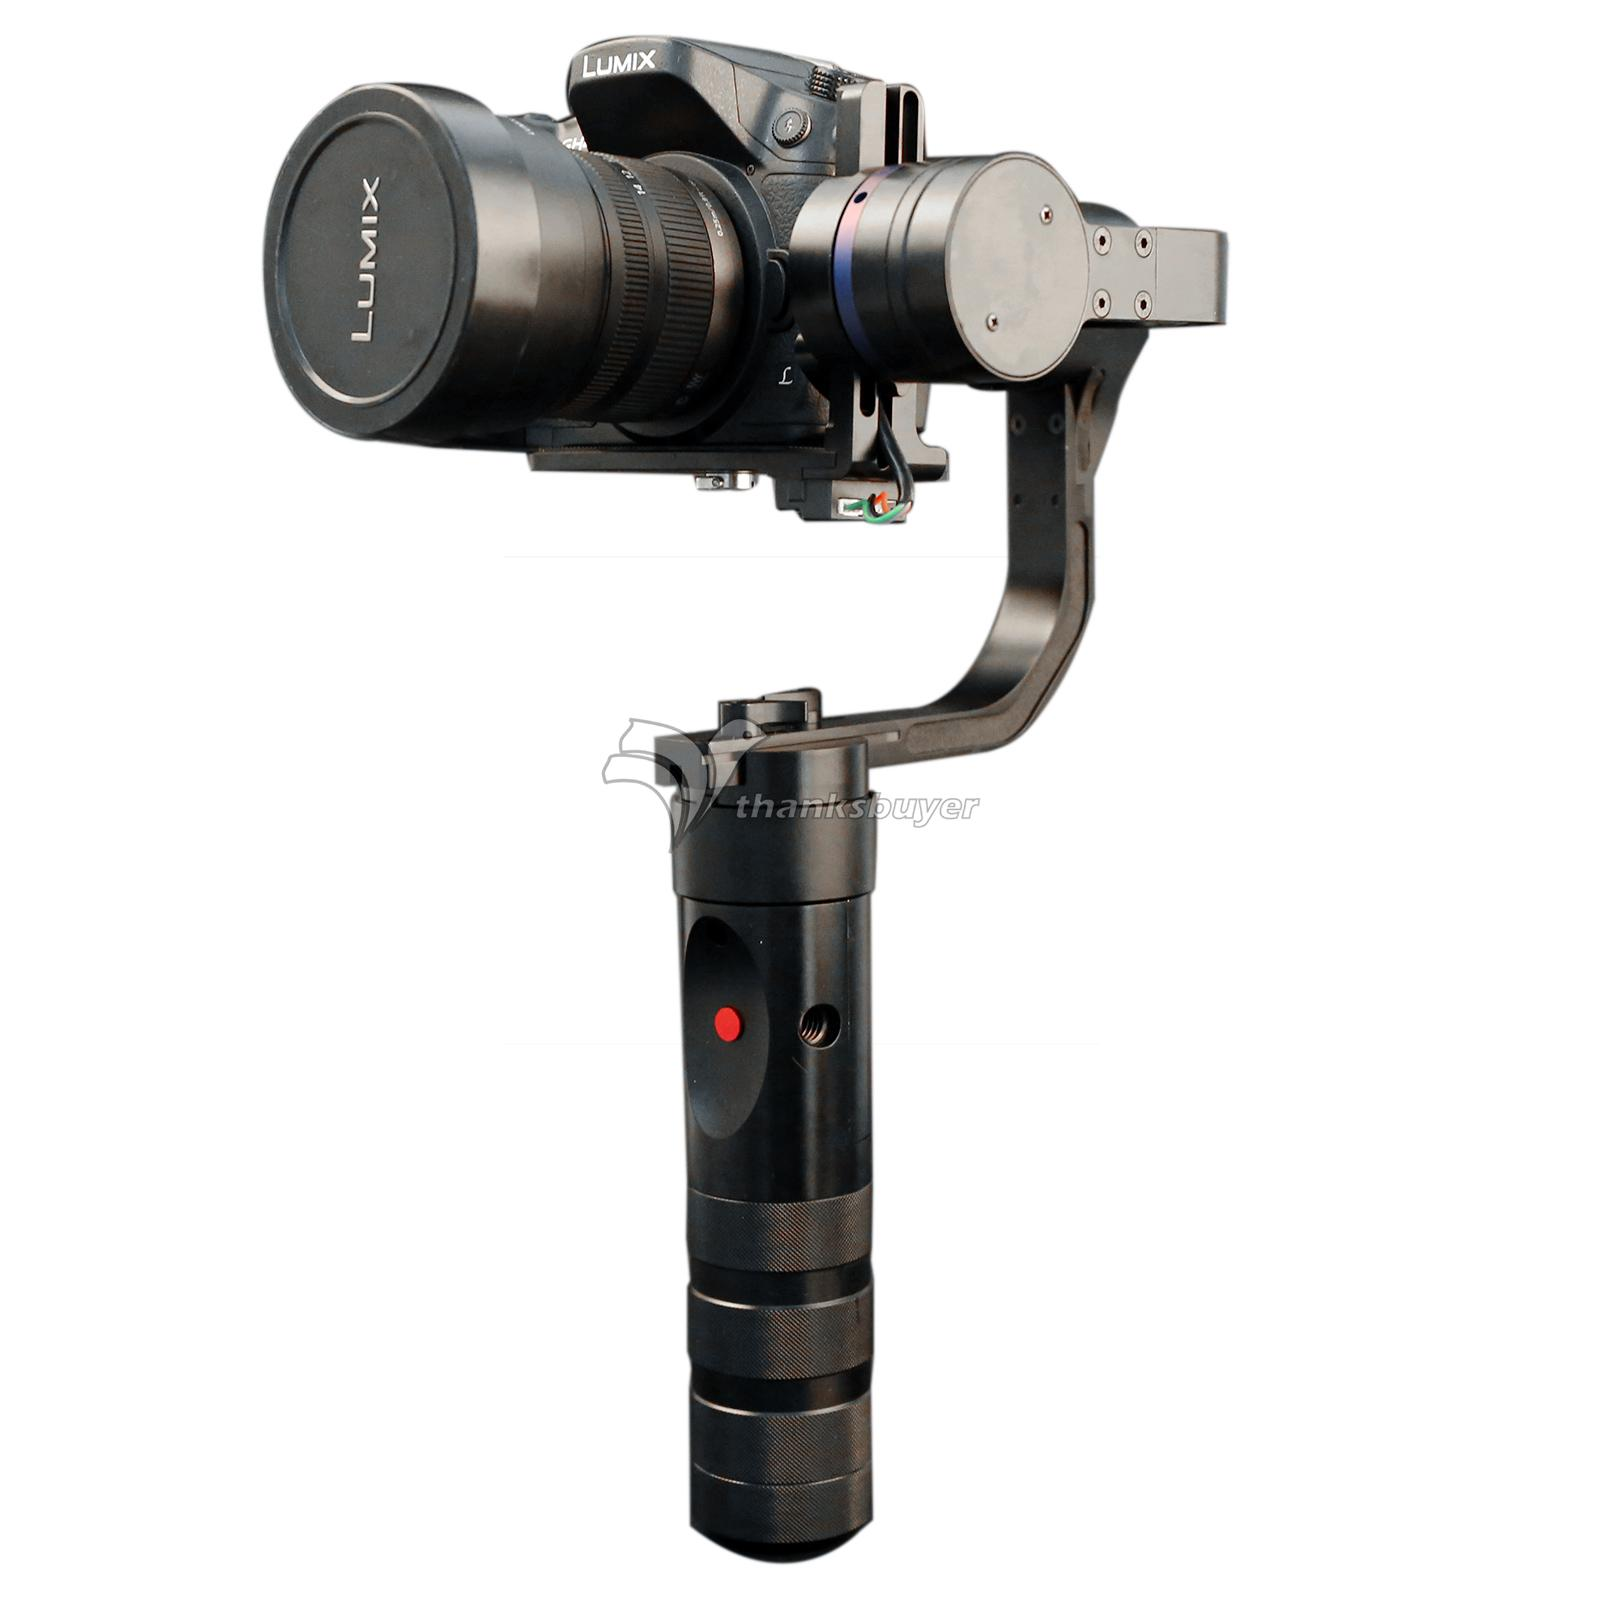 TZT MX1 Handheld 3 Axis Stabilizer Brushless Gimbal PK Nebula 4000 for A7S GH4 Micro DSLR Camera BMPCC skullies